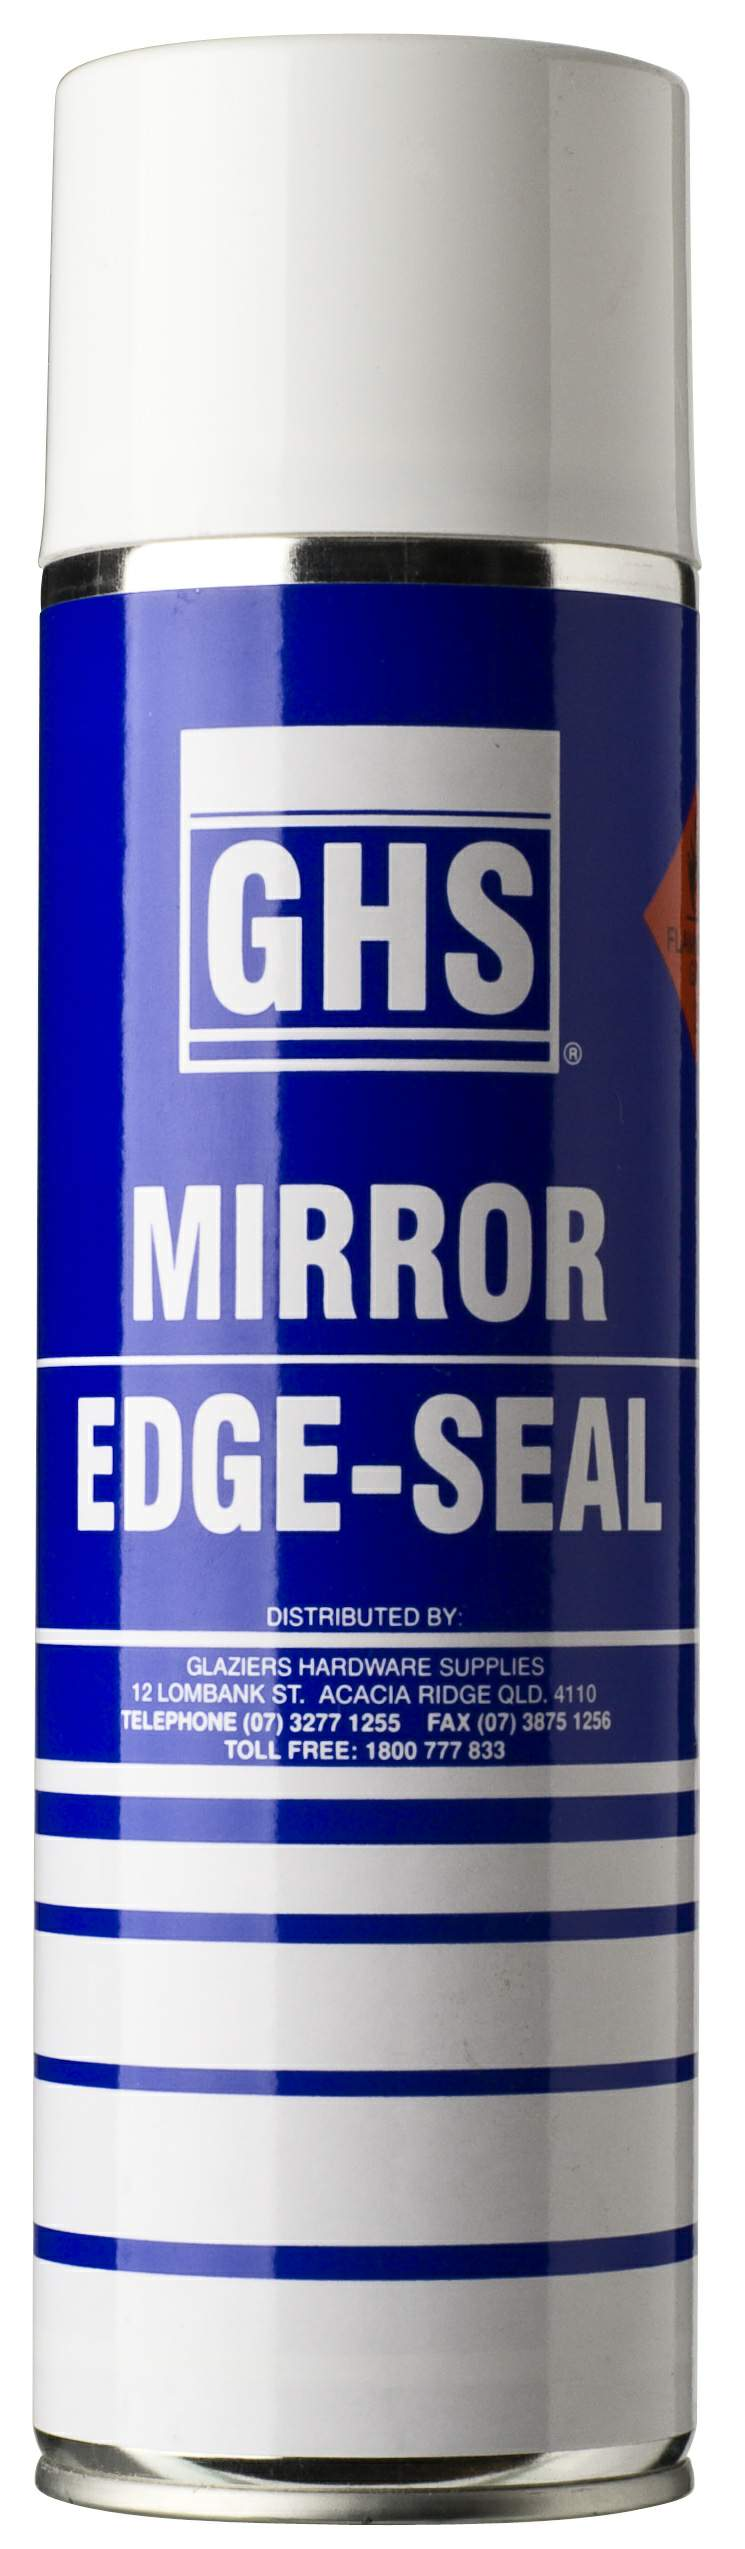 Thumbnail - Ghs Mirror Edge Seal Aerosol 350g